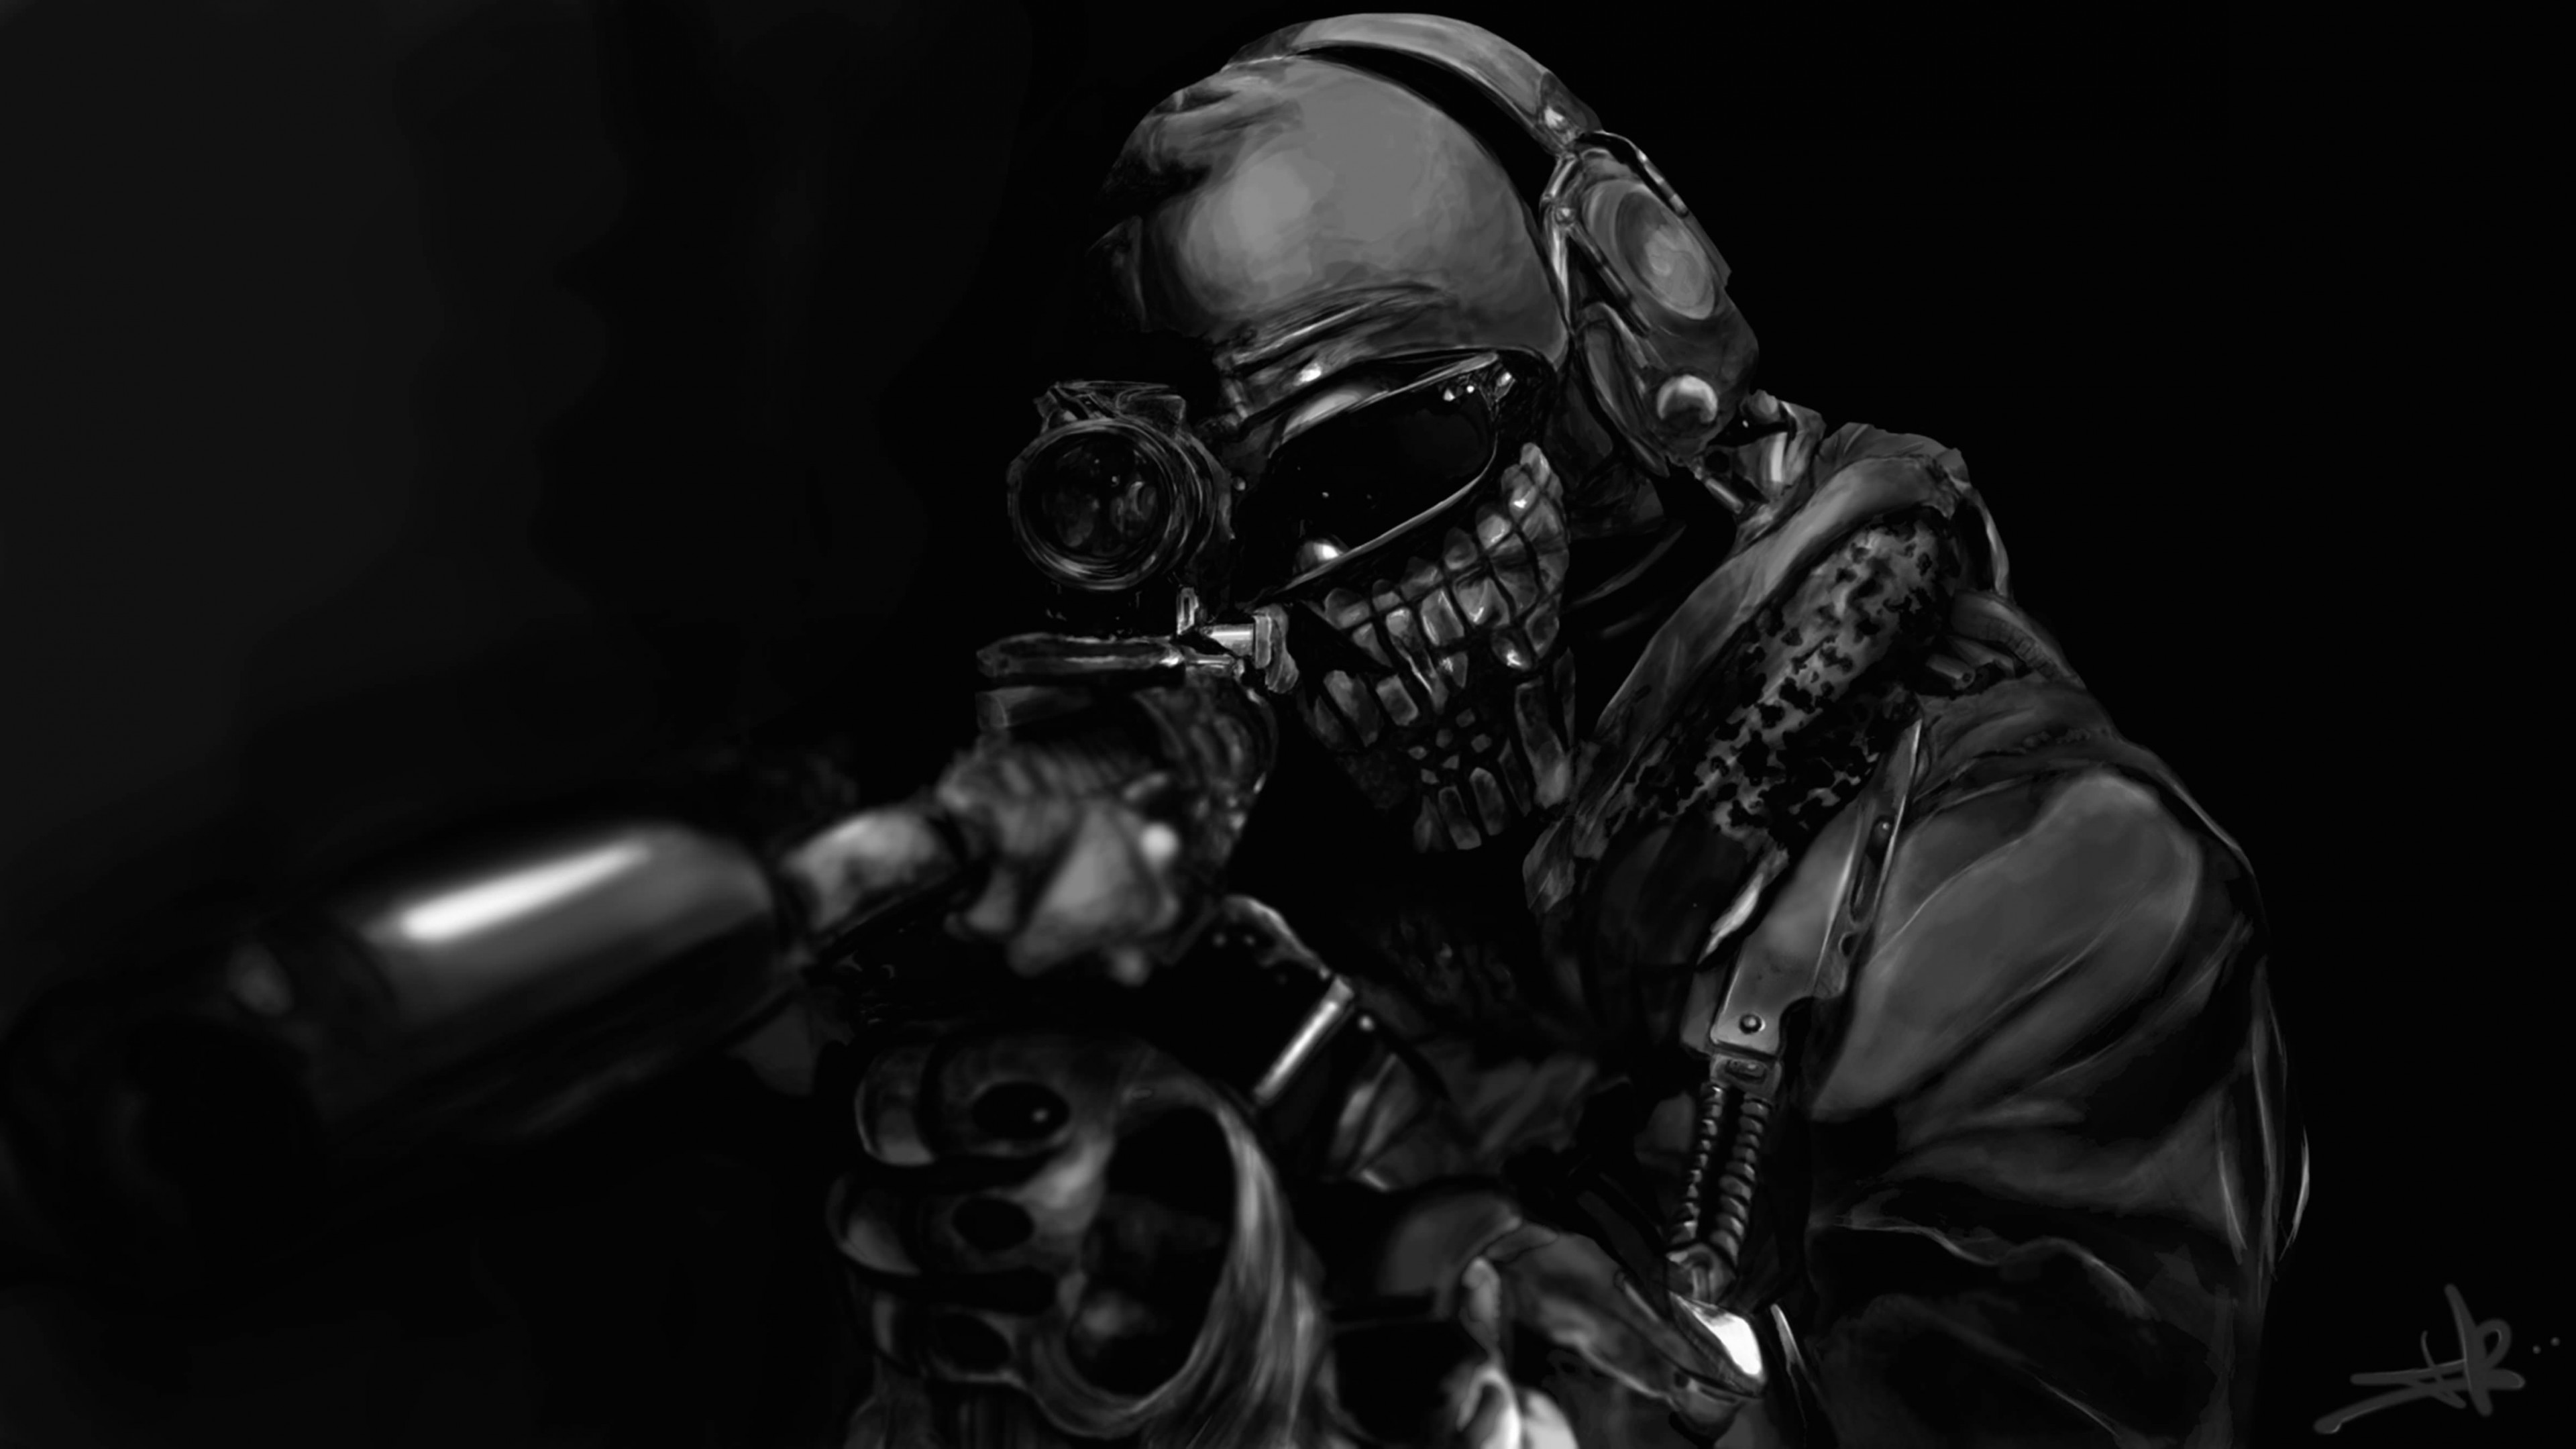 Call of Duty Ghost Masked Warrior wallpaper